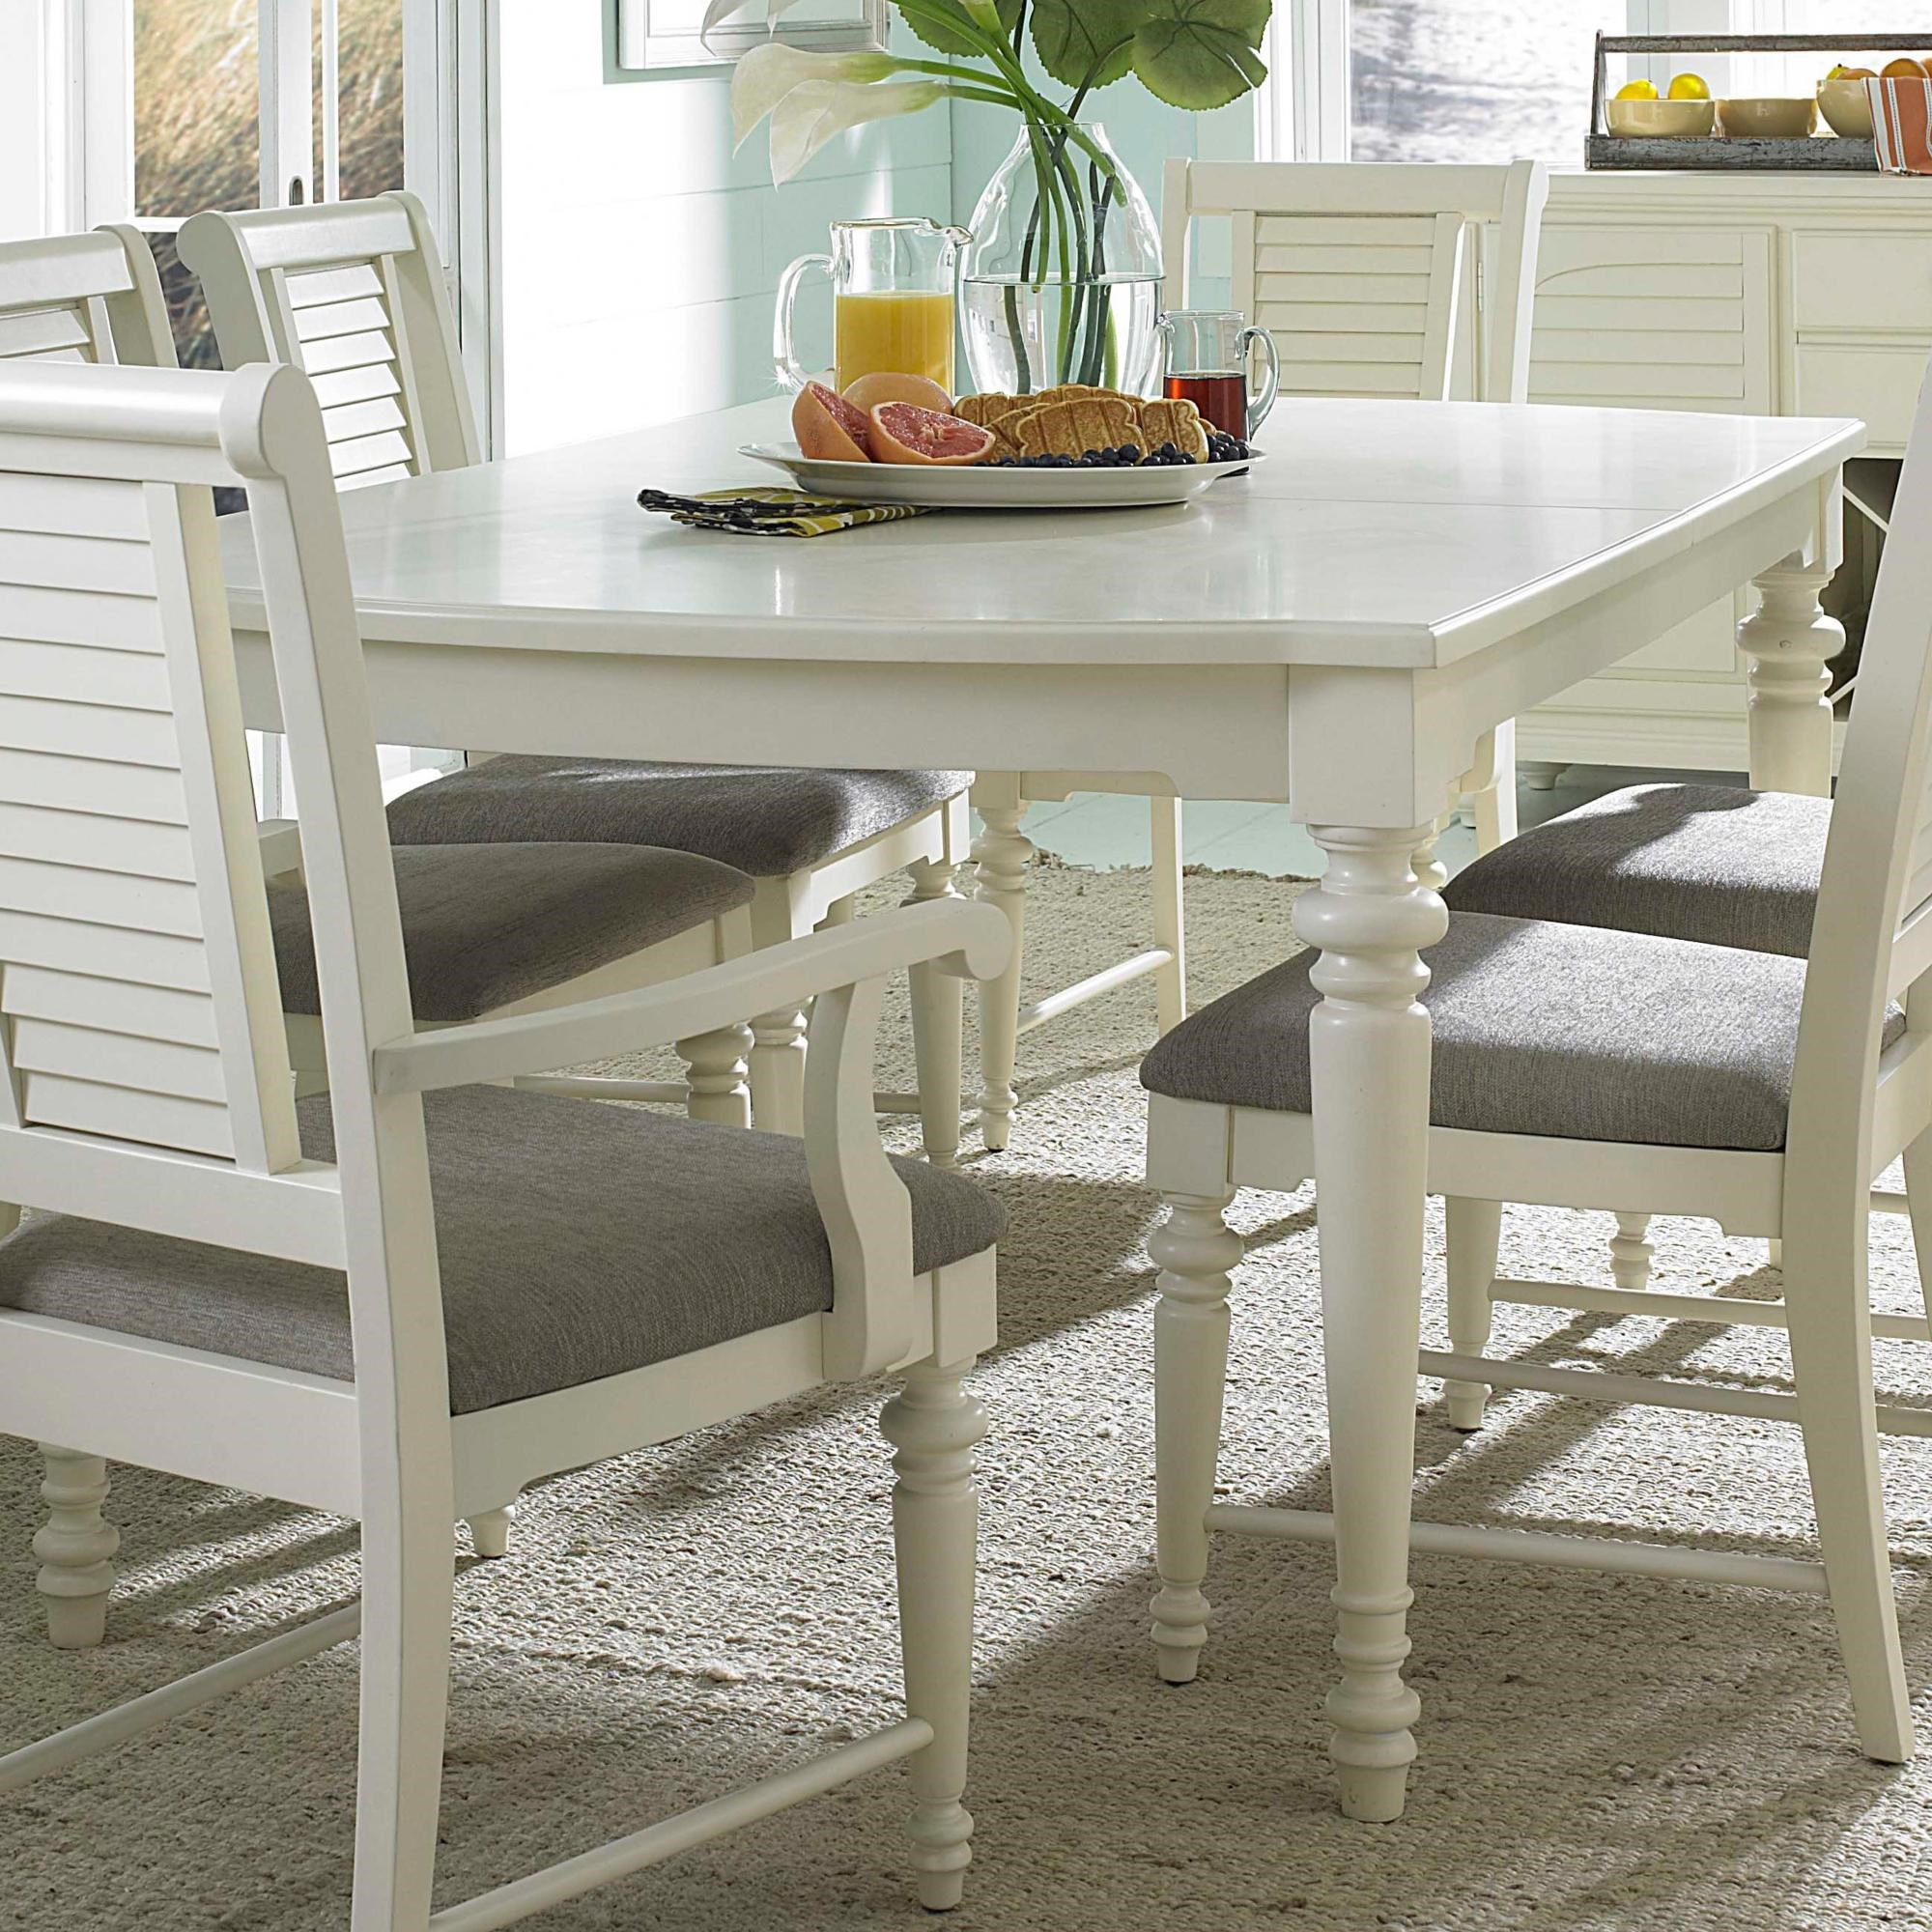 Broyhill Furniture SeabrookeLeg Dining Table ...